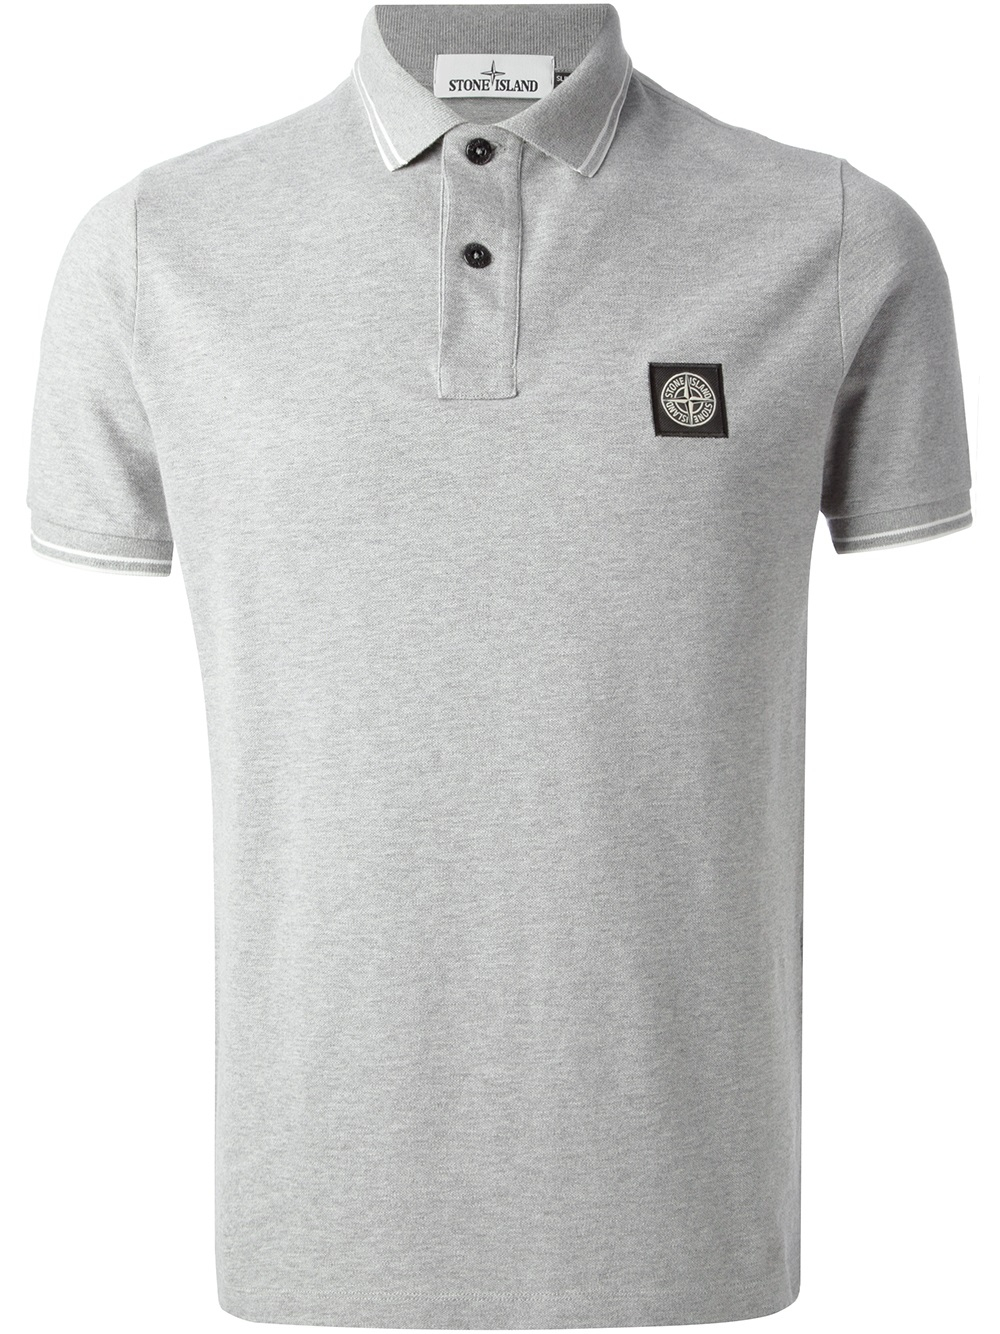 e204bb60 Stone Island Polo Shirt in Gray for Men - Lyst